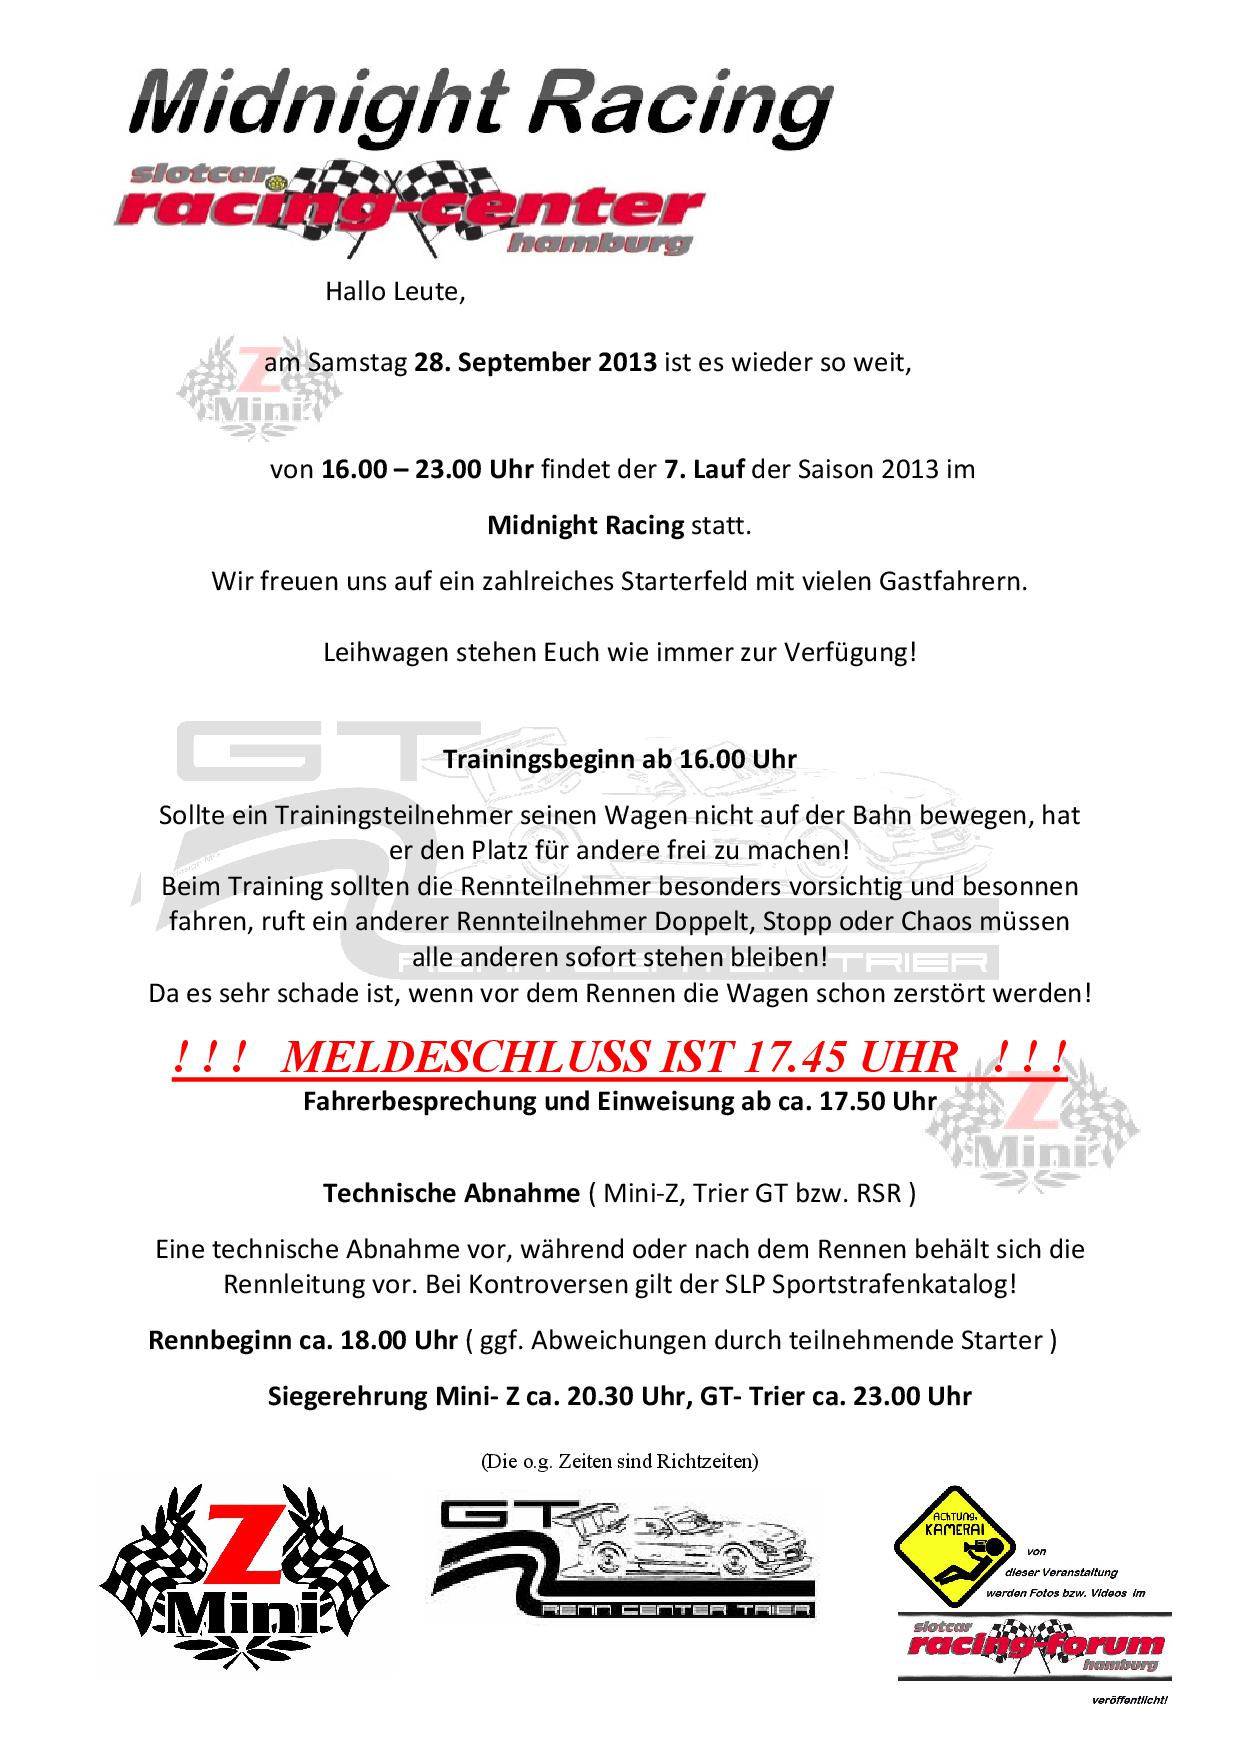 Midnight Race Flyer 28.09.2013-001.jpg